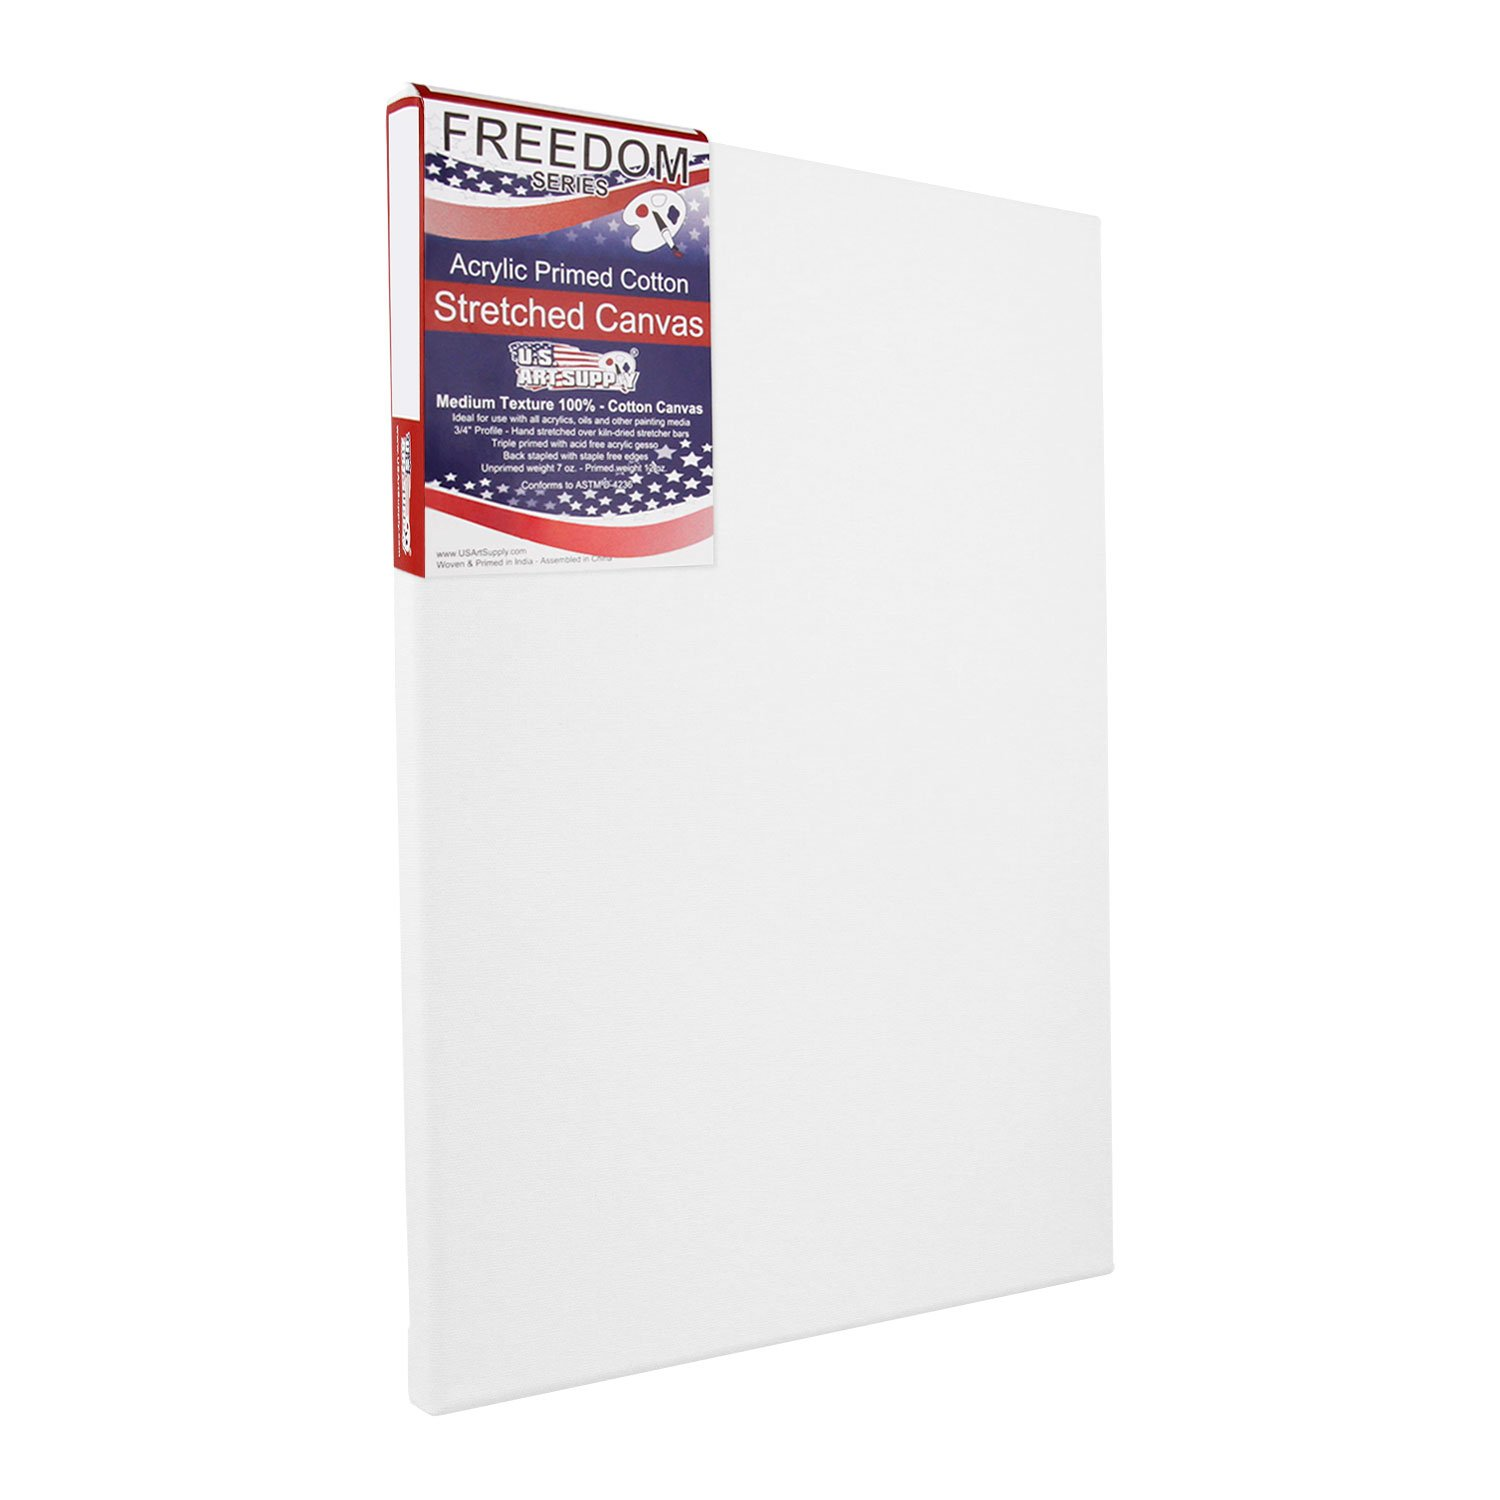 US Art Supply 30 X 40 inch Professional Quality Acid Free Stretched Canvas 6-Pack 3//4 Profile 12 Ounce Primed Gesso 1 Full Case of 6 Single Canvases